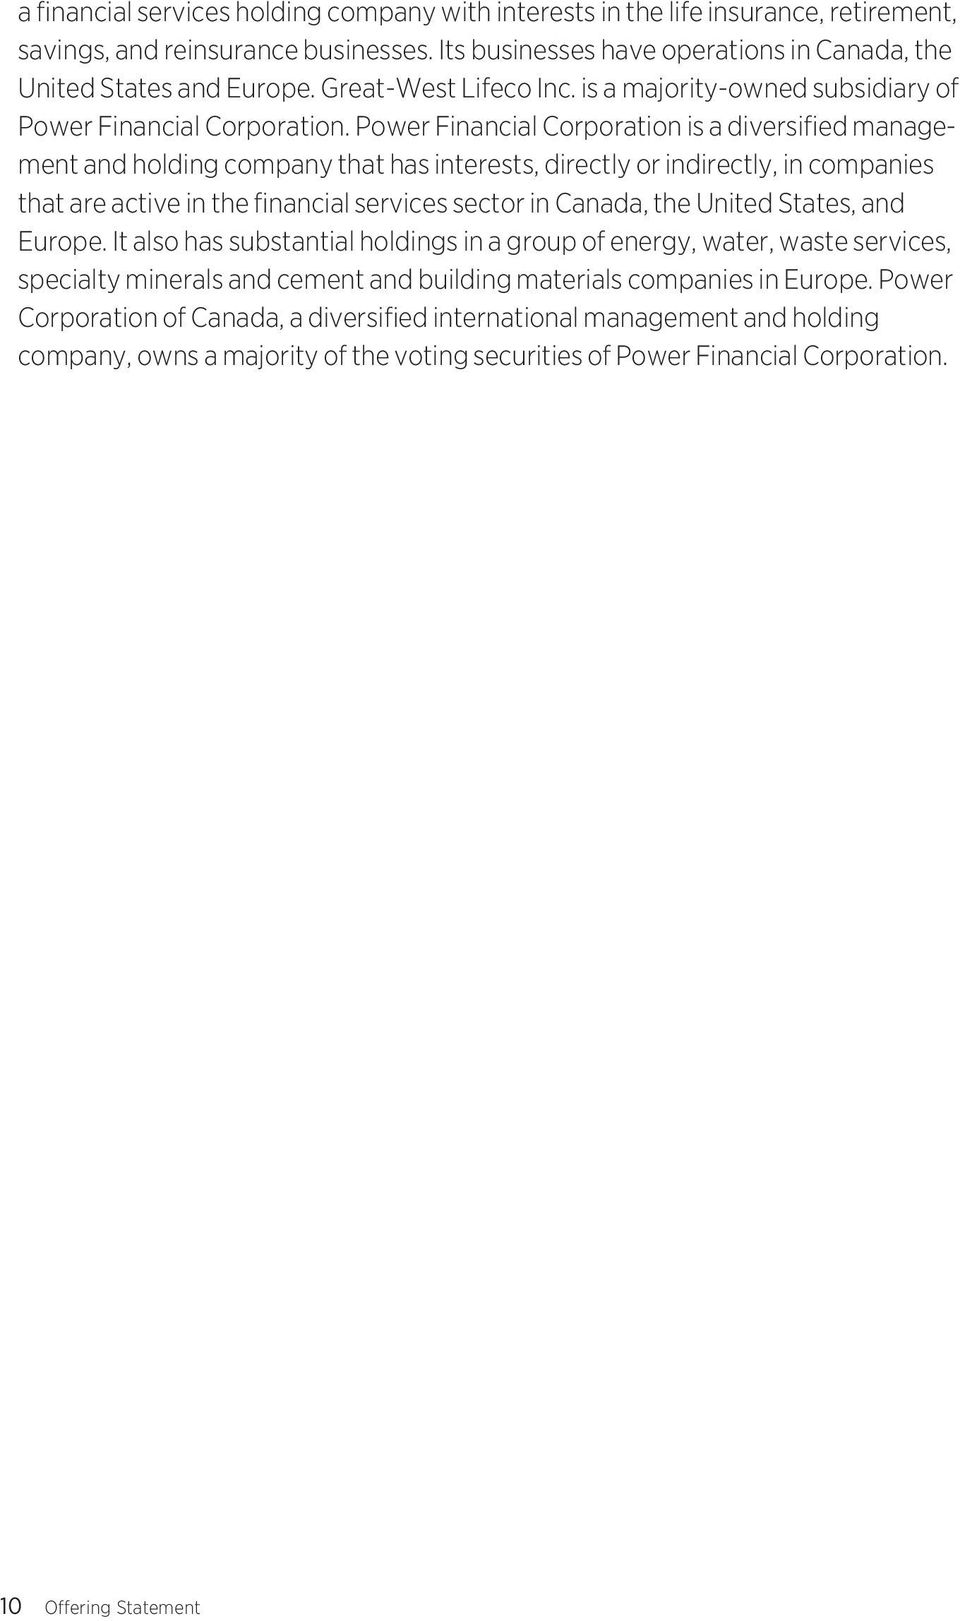 Power Financial Corporation is a diversified management and holding company that has interests, directly or indirectly, in companies that are active in the financial services sector in Canada, the